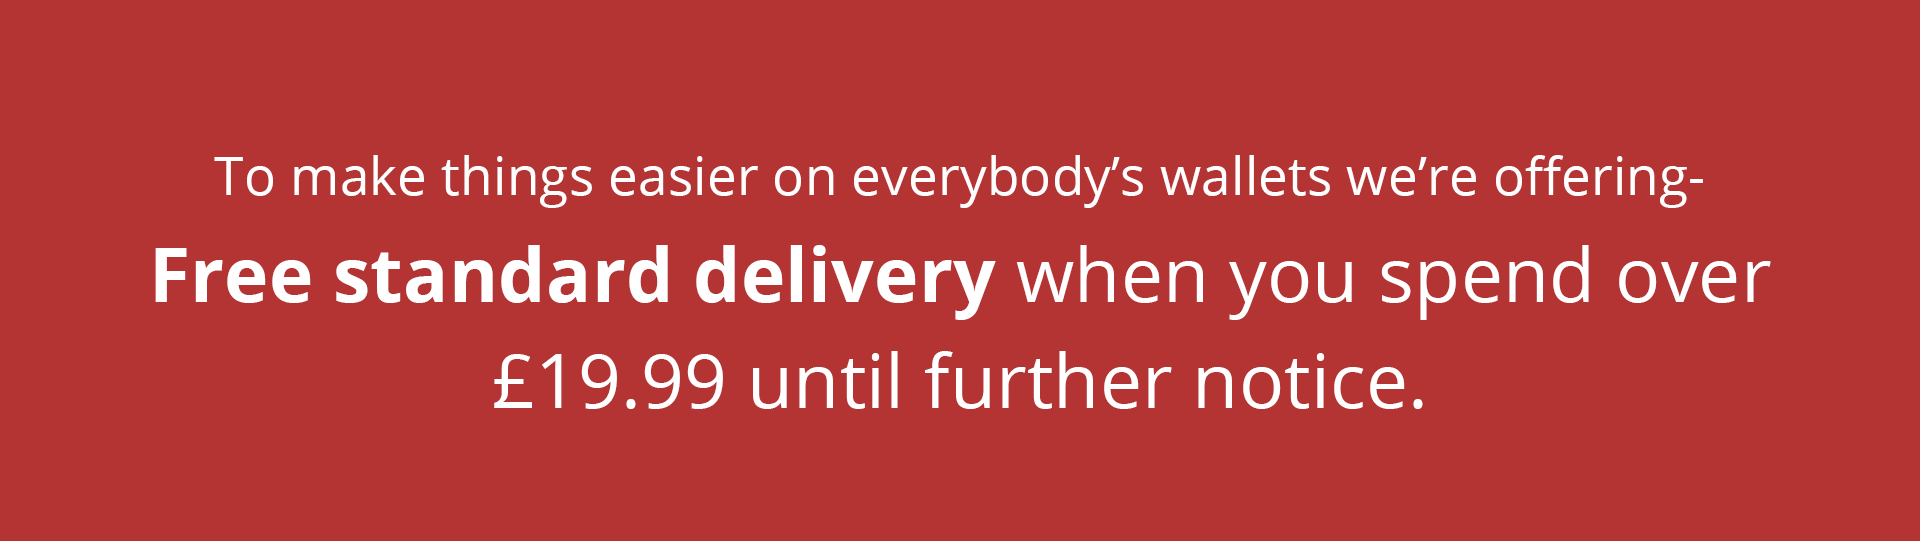 Free standard delivery when you spend over £19.99